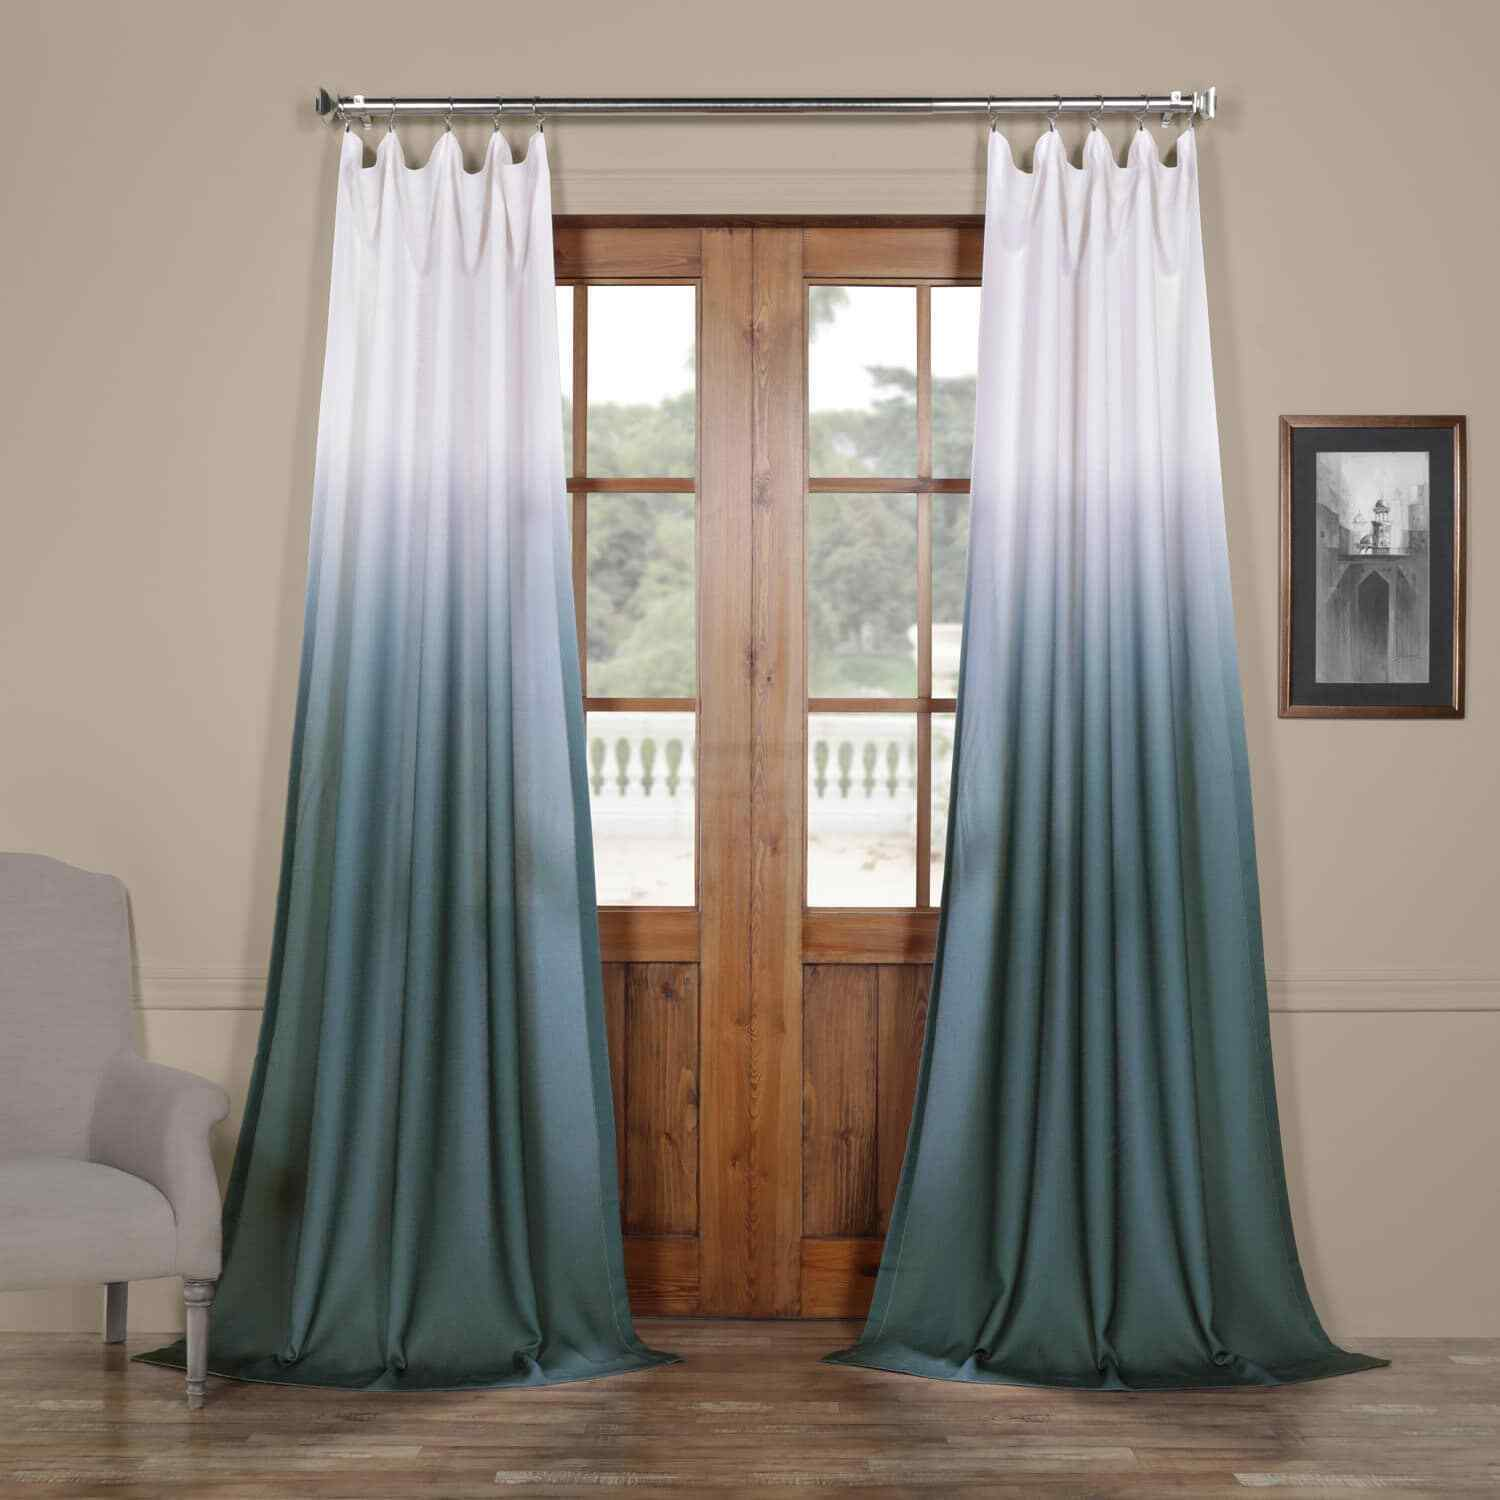 Mountain Olive Green 108 X 50 In Faux Linen Semi Sheer Curtain Single Panel For Sale Online Ebay